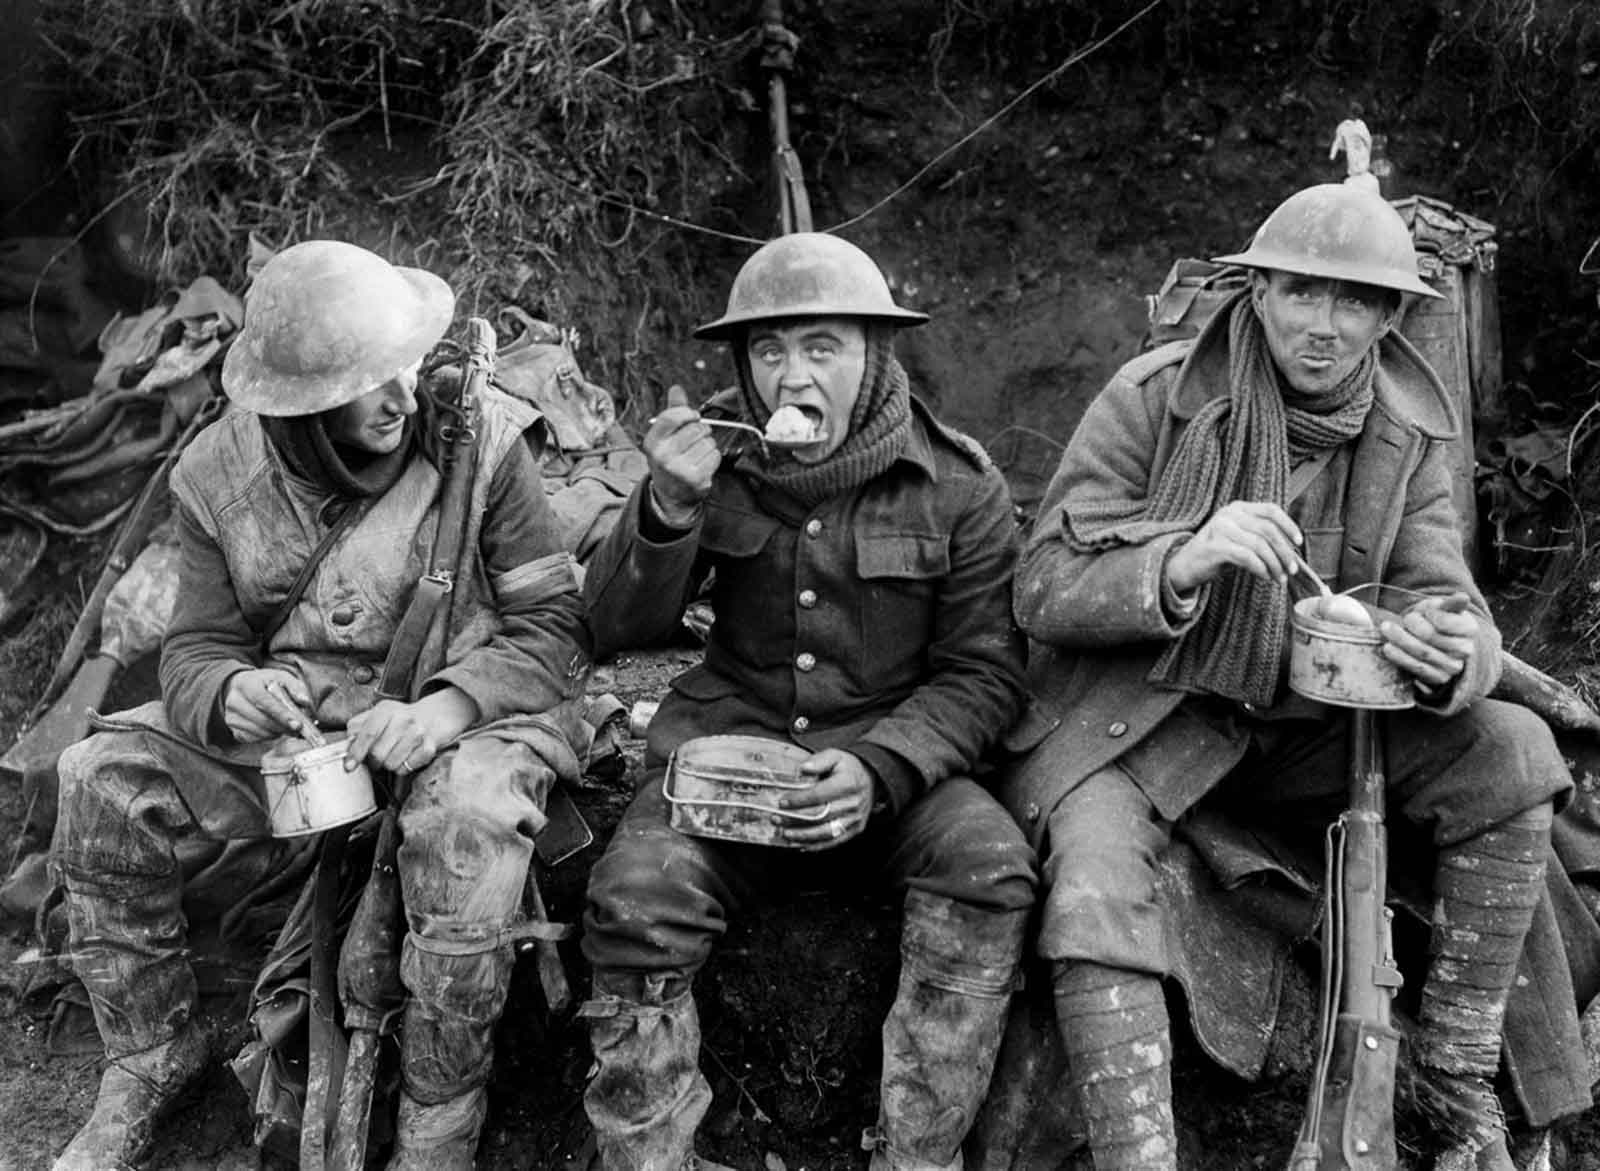 the battle of somme 1916 : the blood letting  army suffers the worst single-day death toll in its history as 18,800 soldiers are killed on the first day of the battle of the somme.